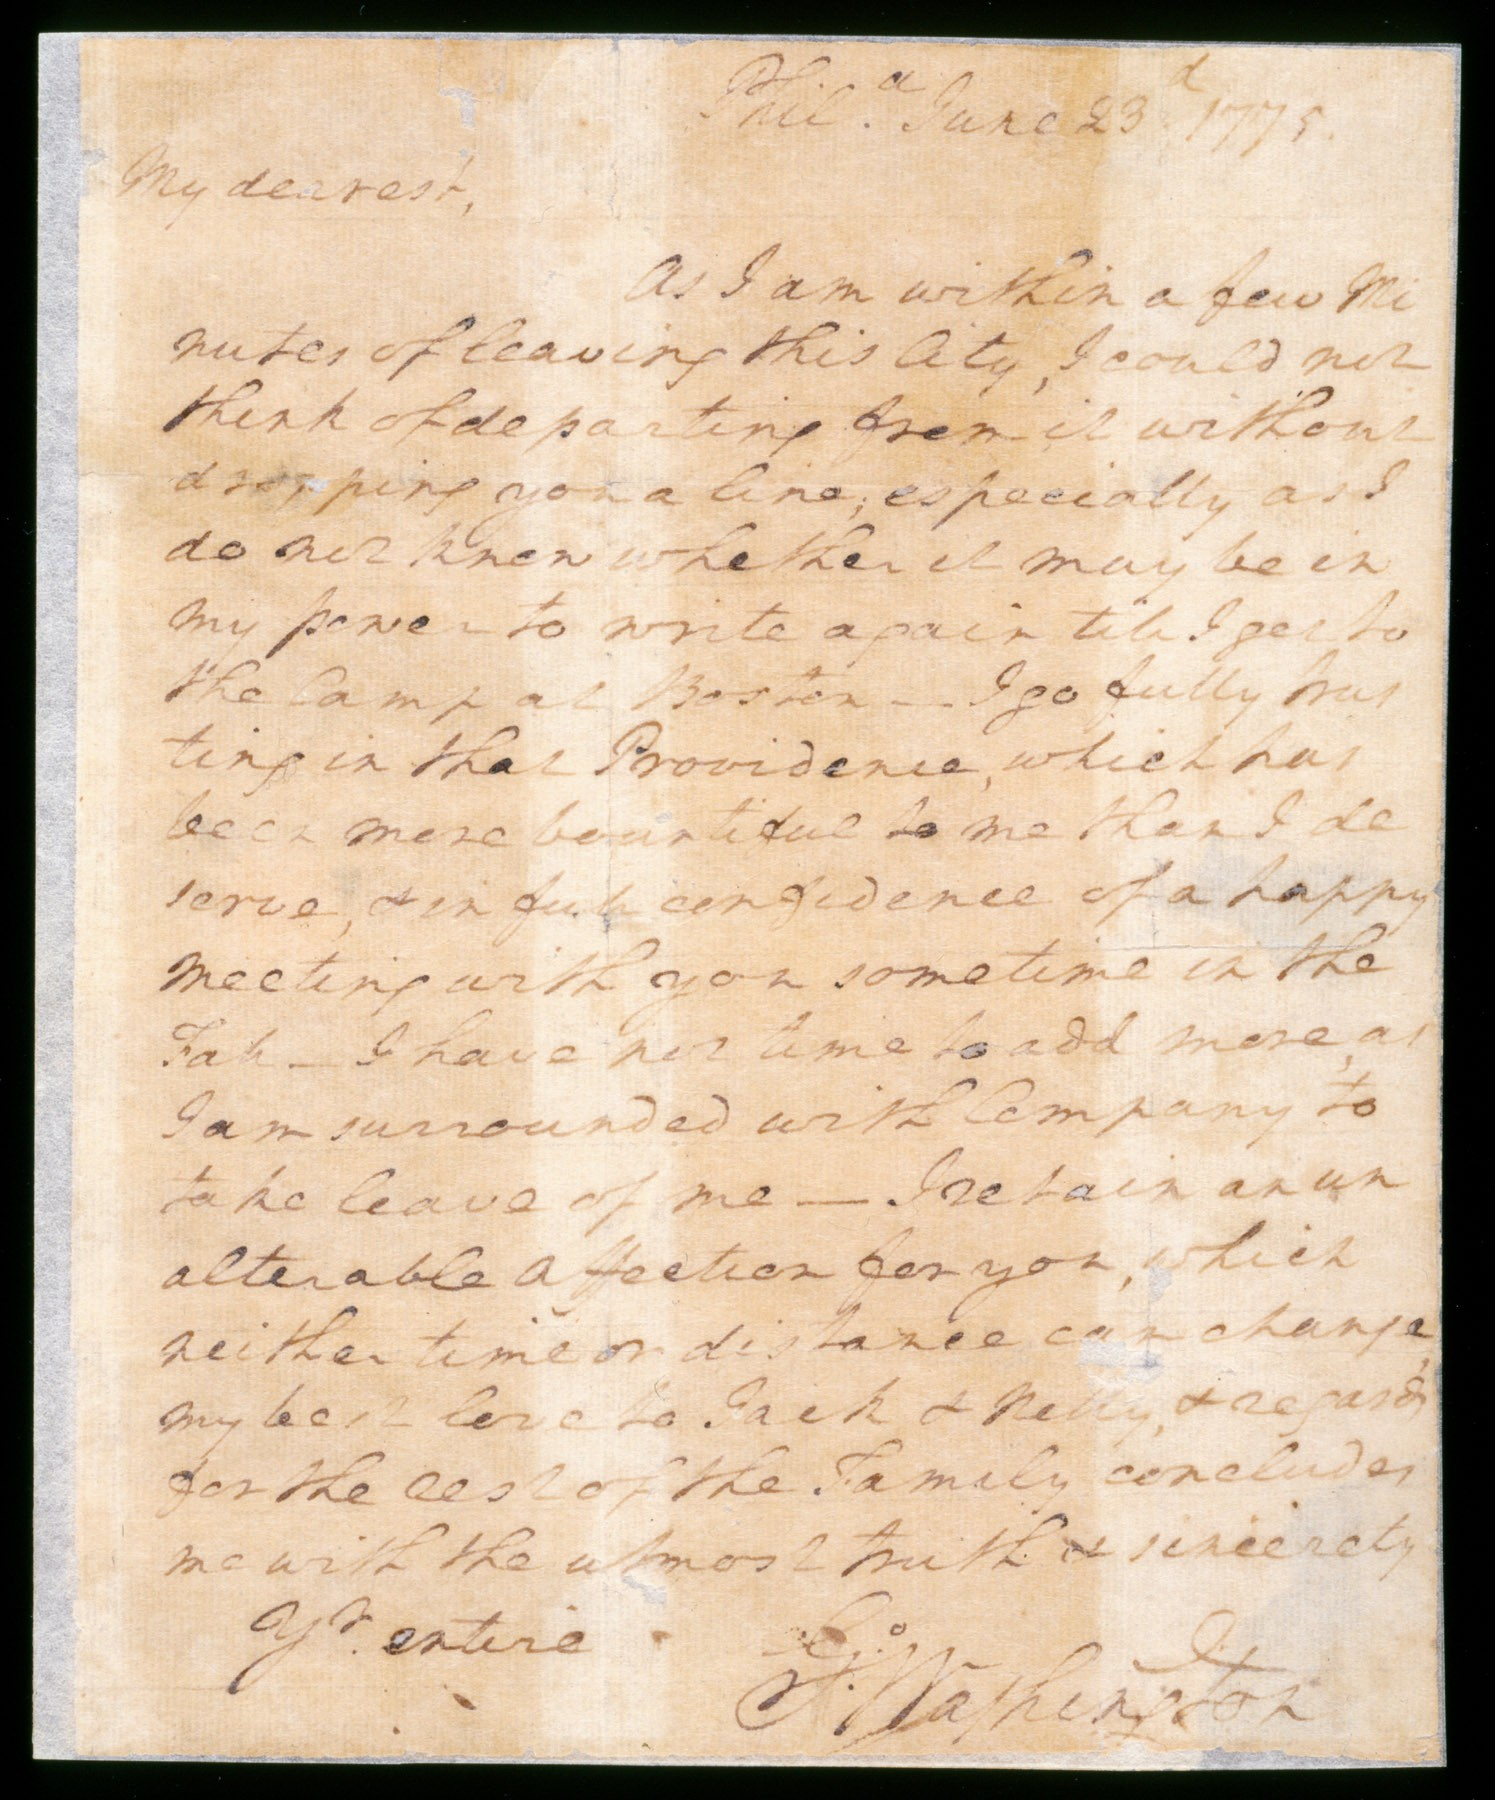 A love letter from George Washington to wife Martha